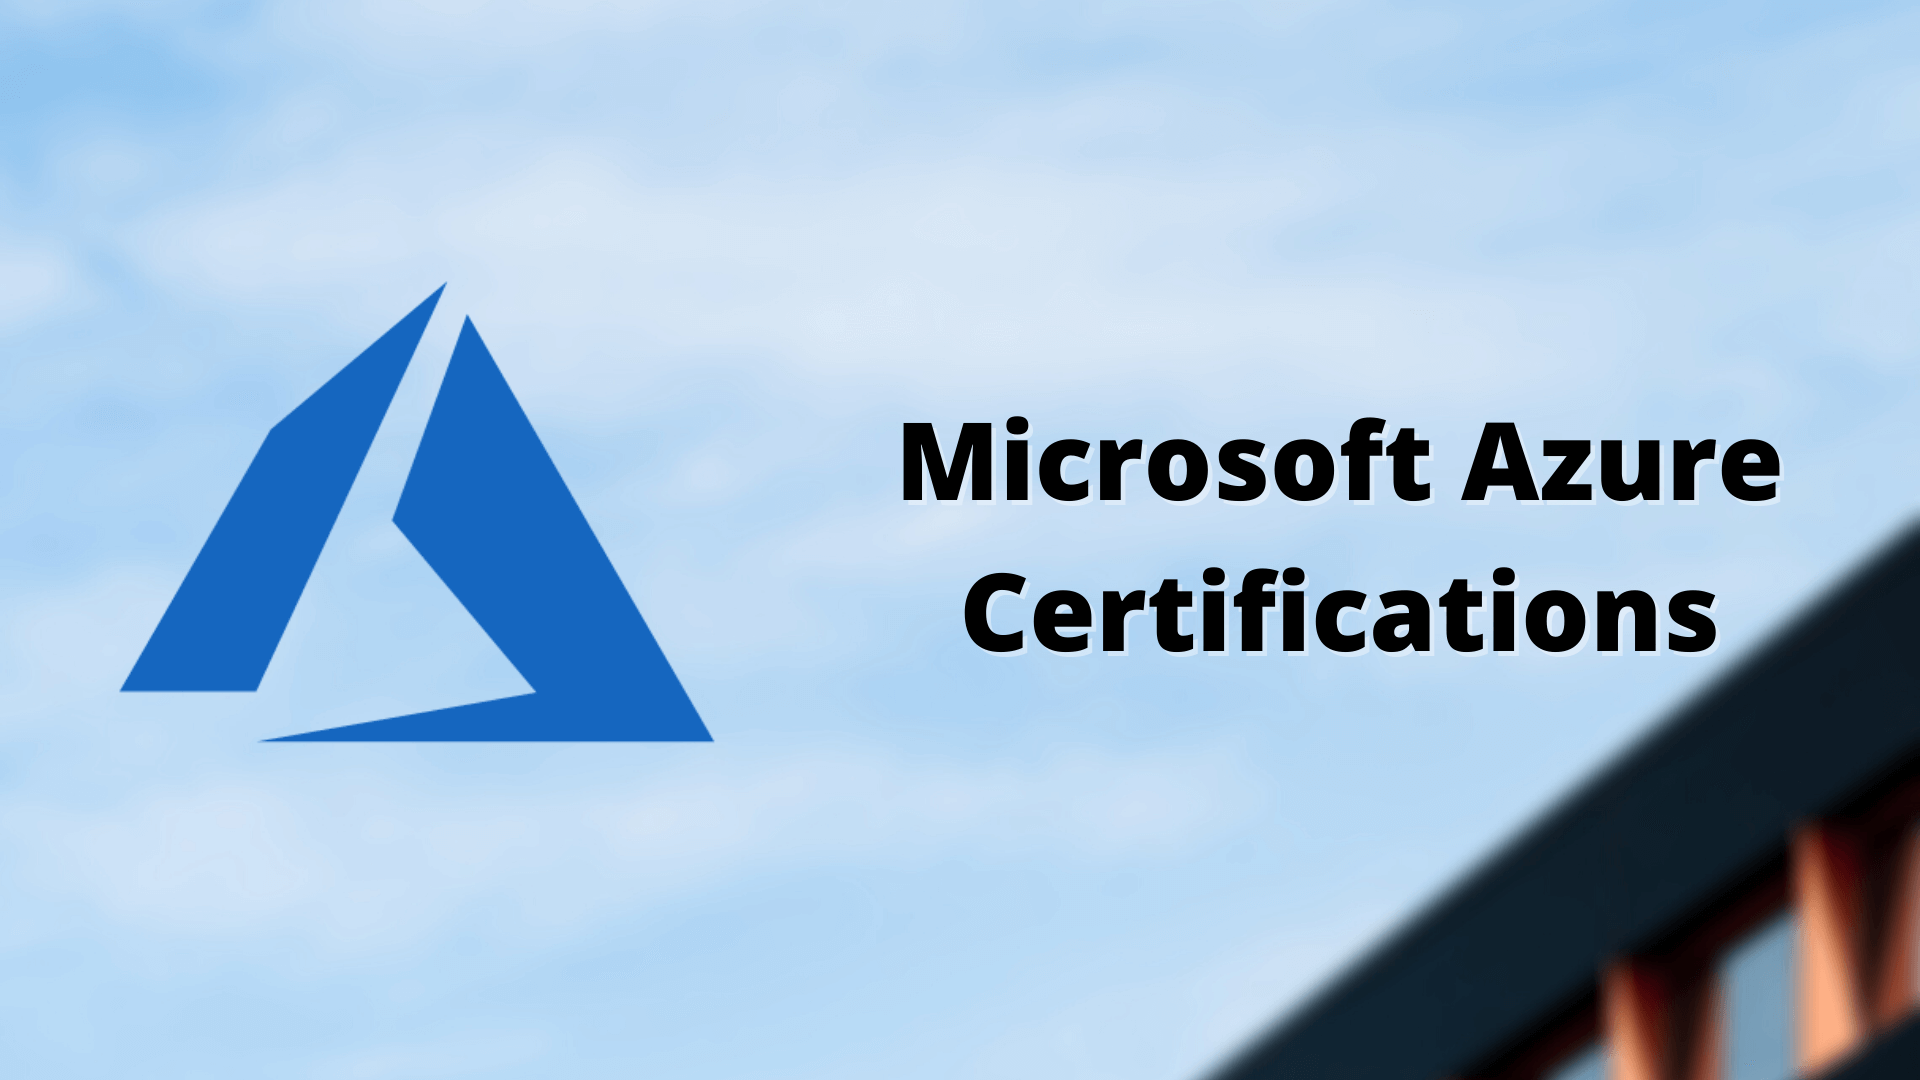 5 Best Microsoft Azure Exam Certifications Courses - Prepare for Microsoft Azure Online